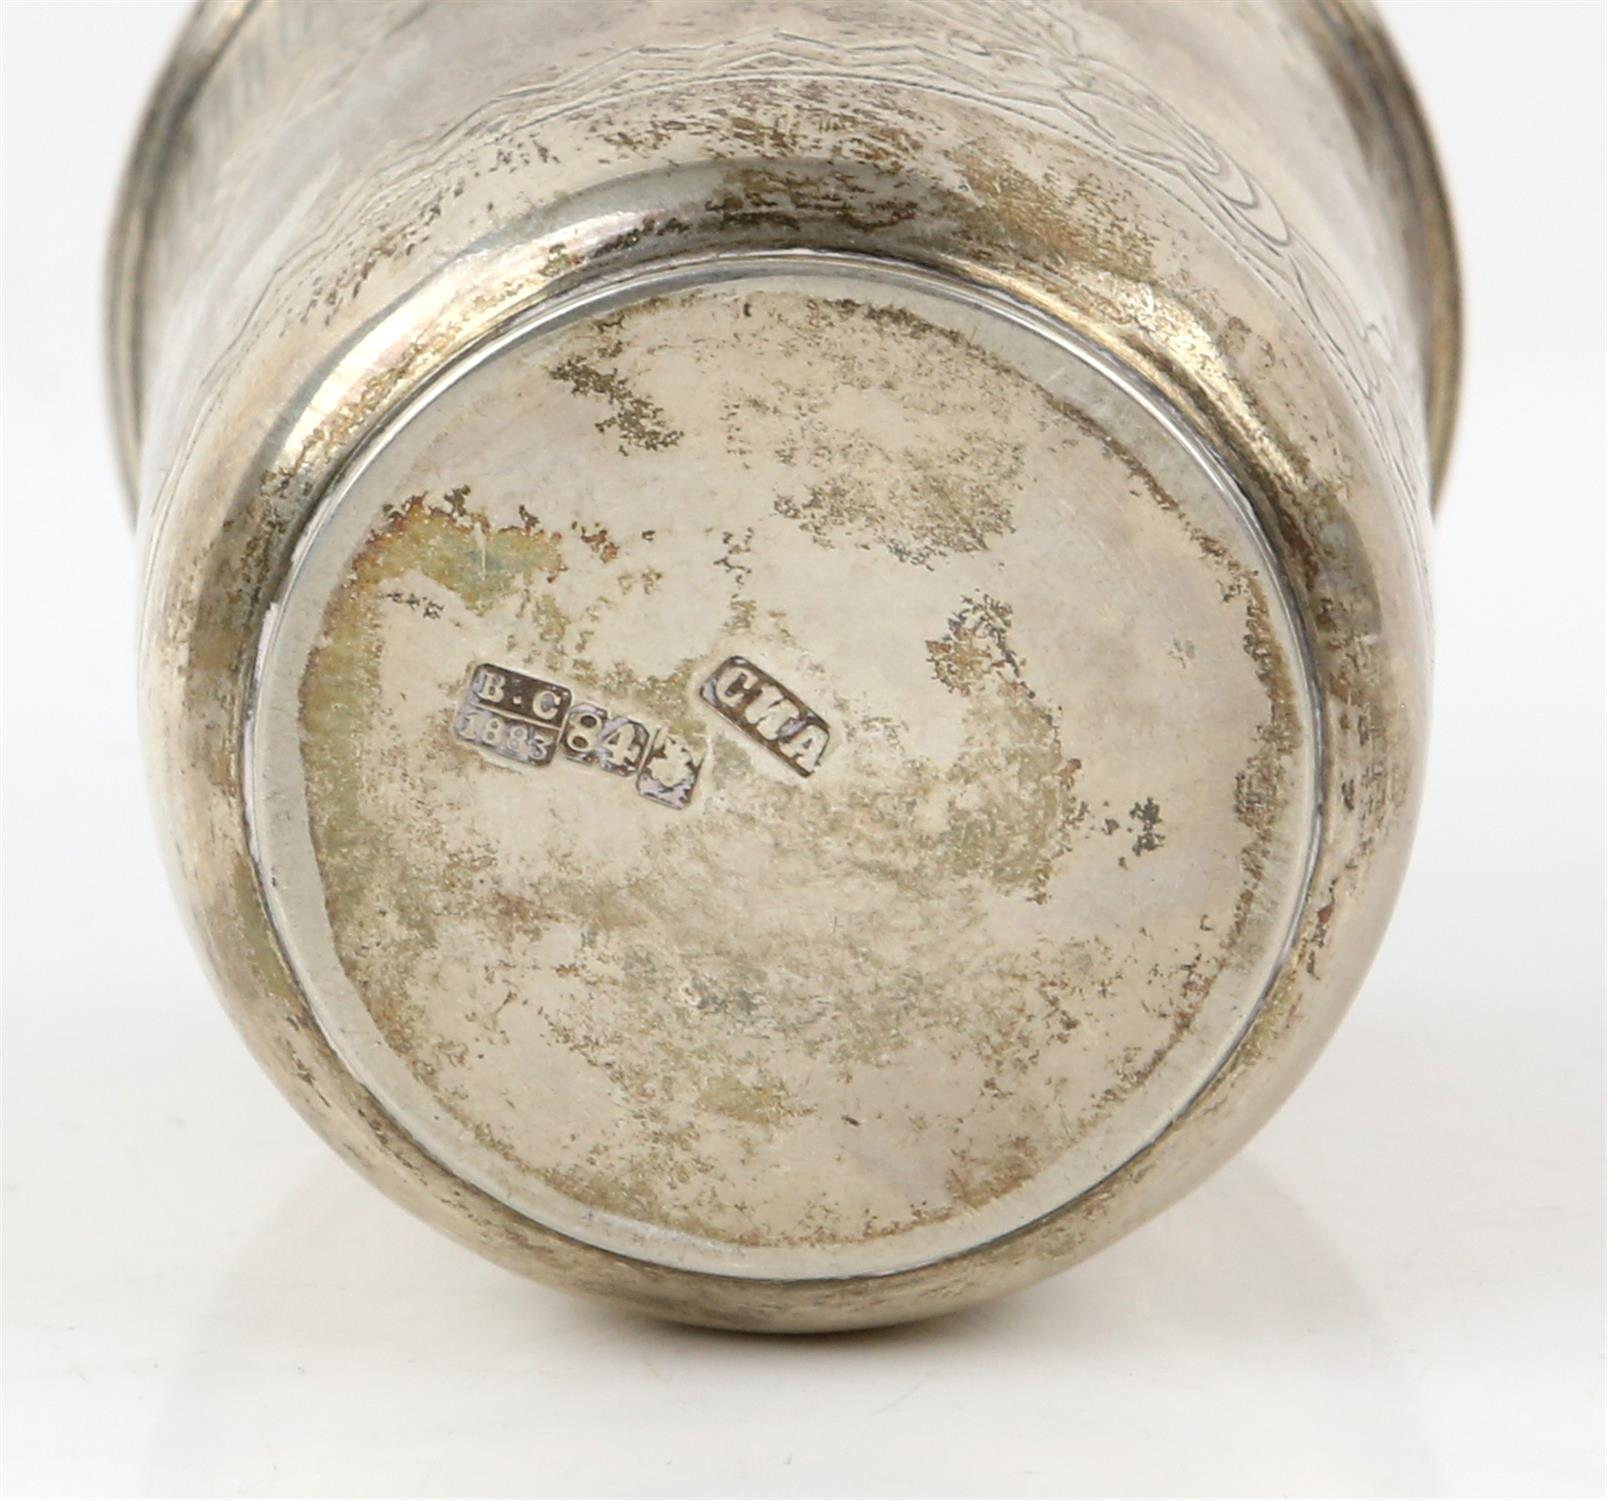 19th century Russian silver beaker with engraved decoration, maker's mark 'CNA', Moscow, 1883, 2. - Image 4 of 4